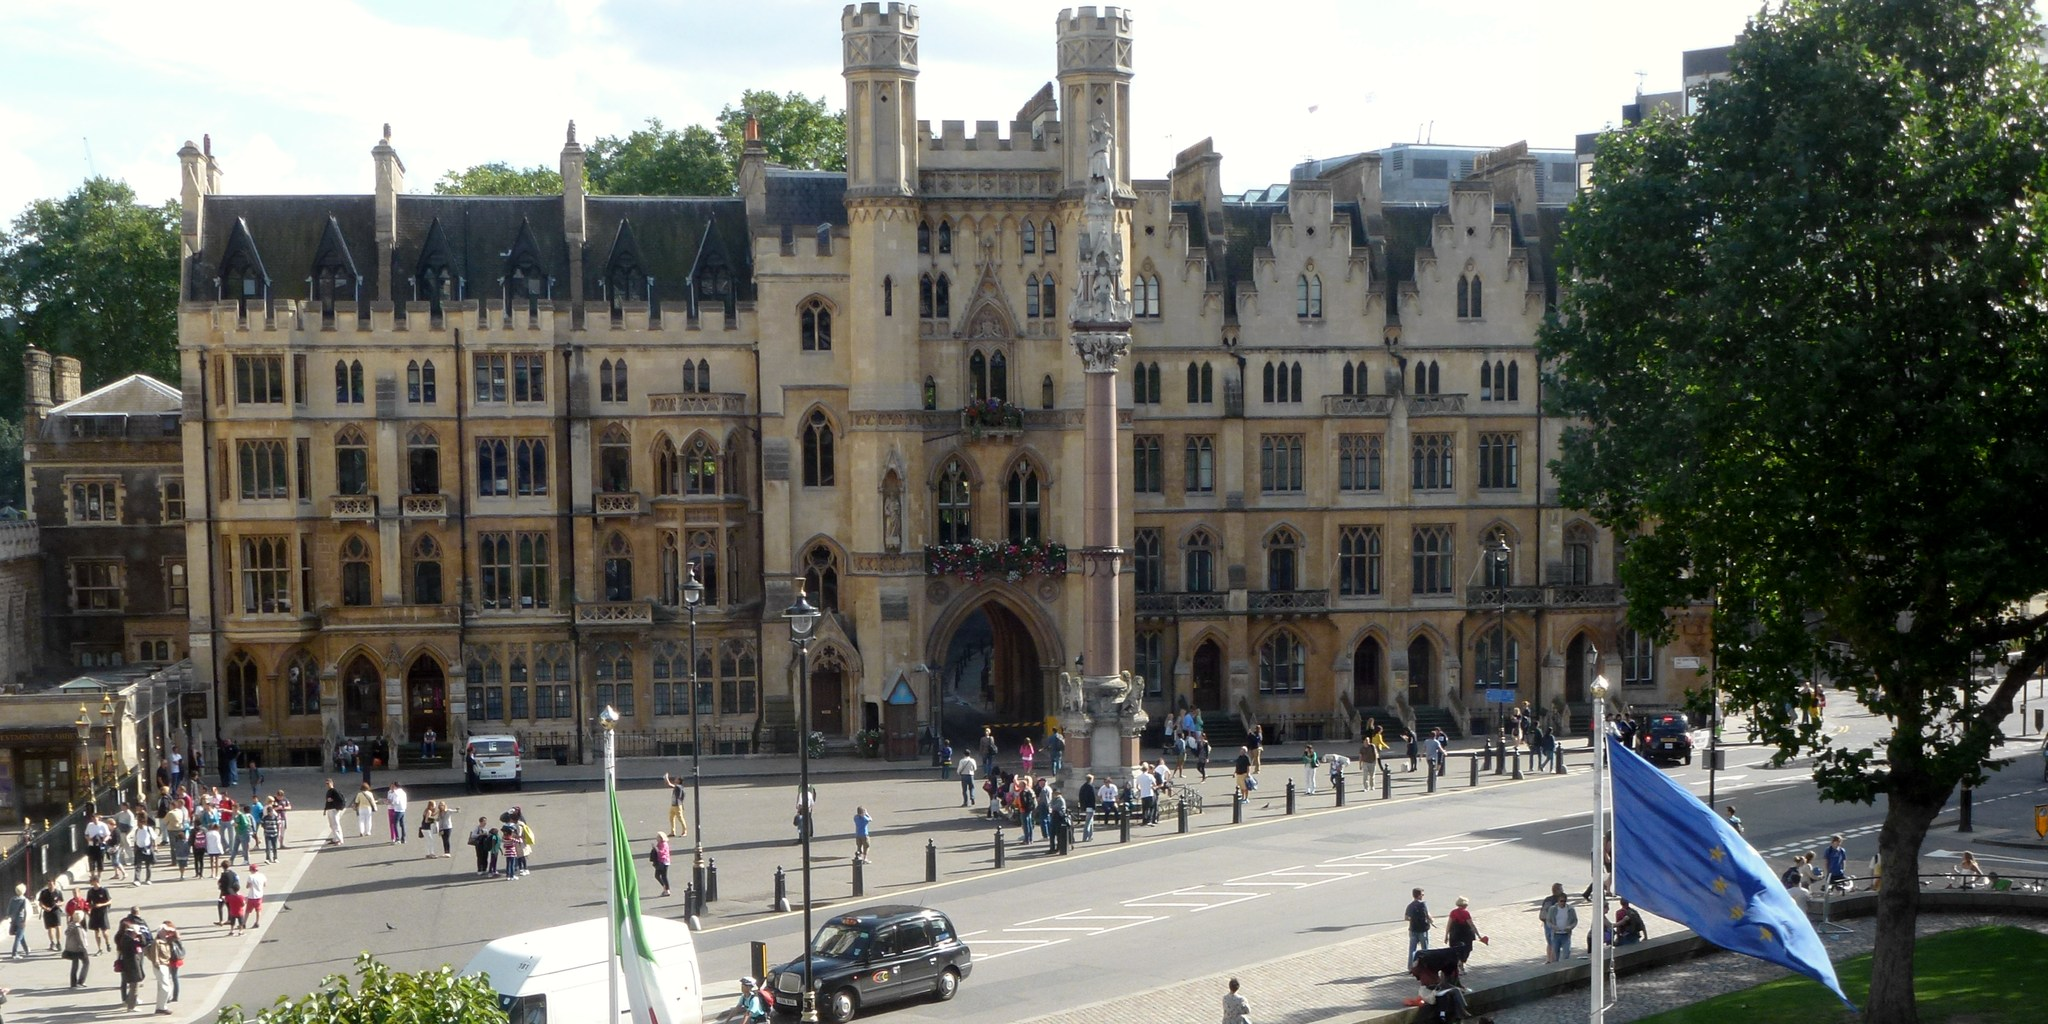 The Westminster School, London, averages 70-80 Oxbridge places for its students per year.